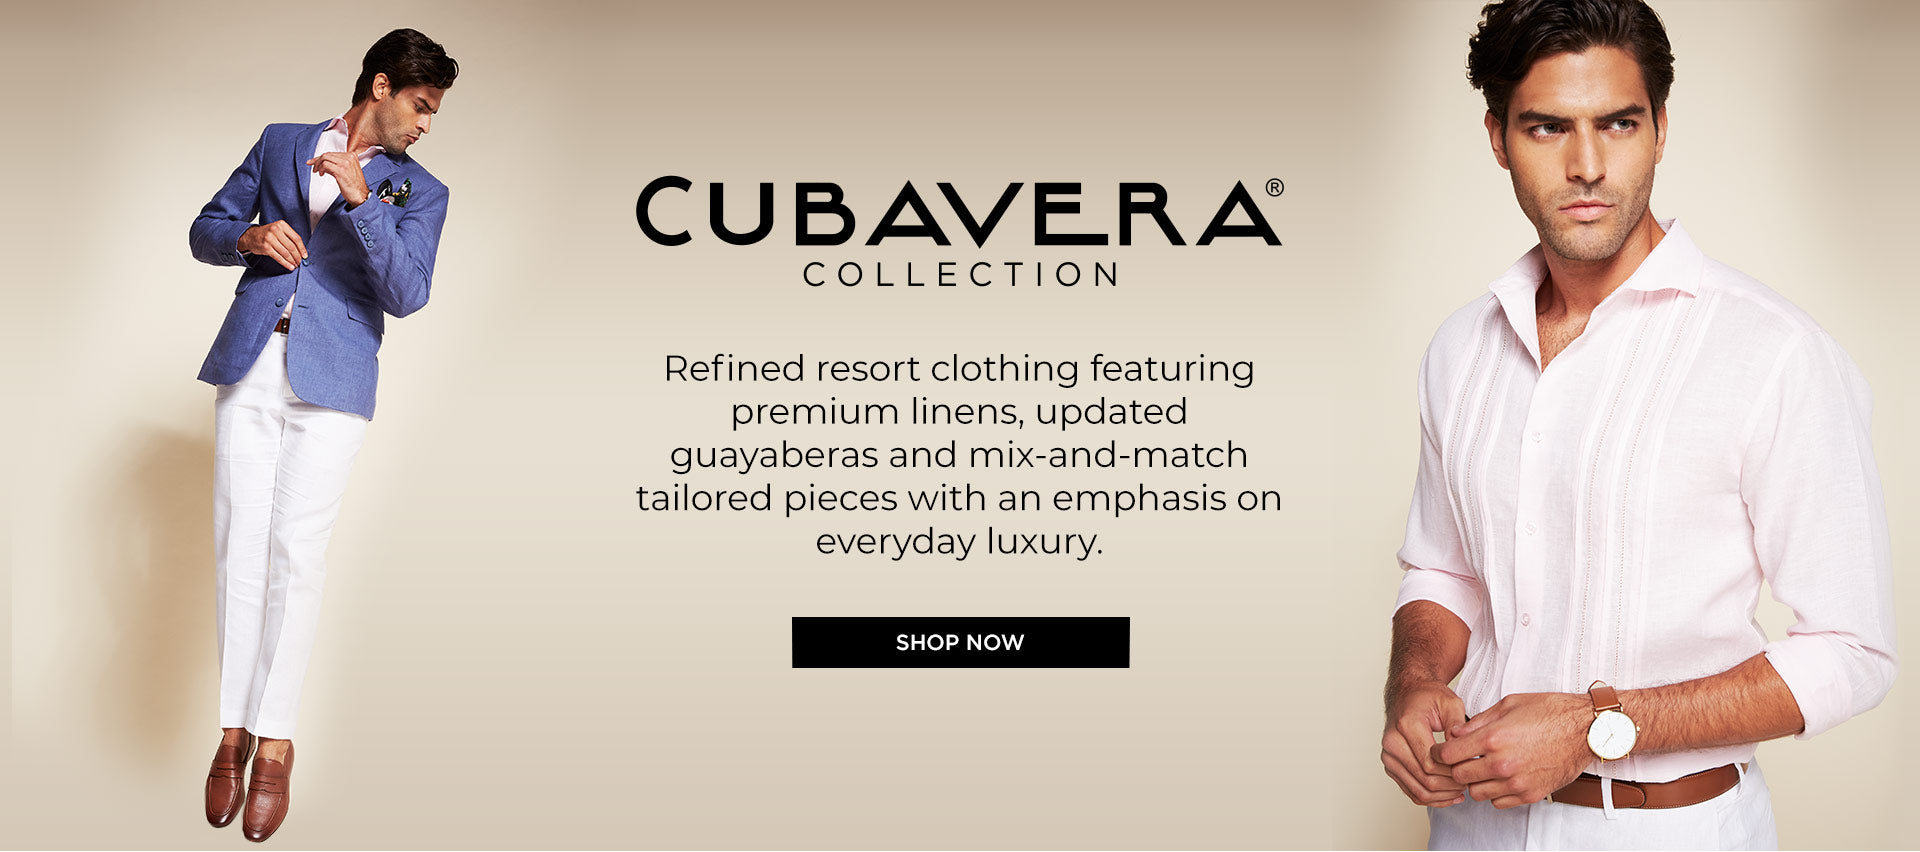 The Cubavera Collection - Shop Now